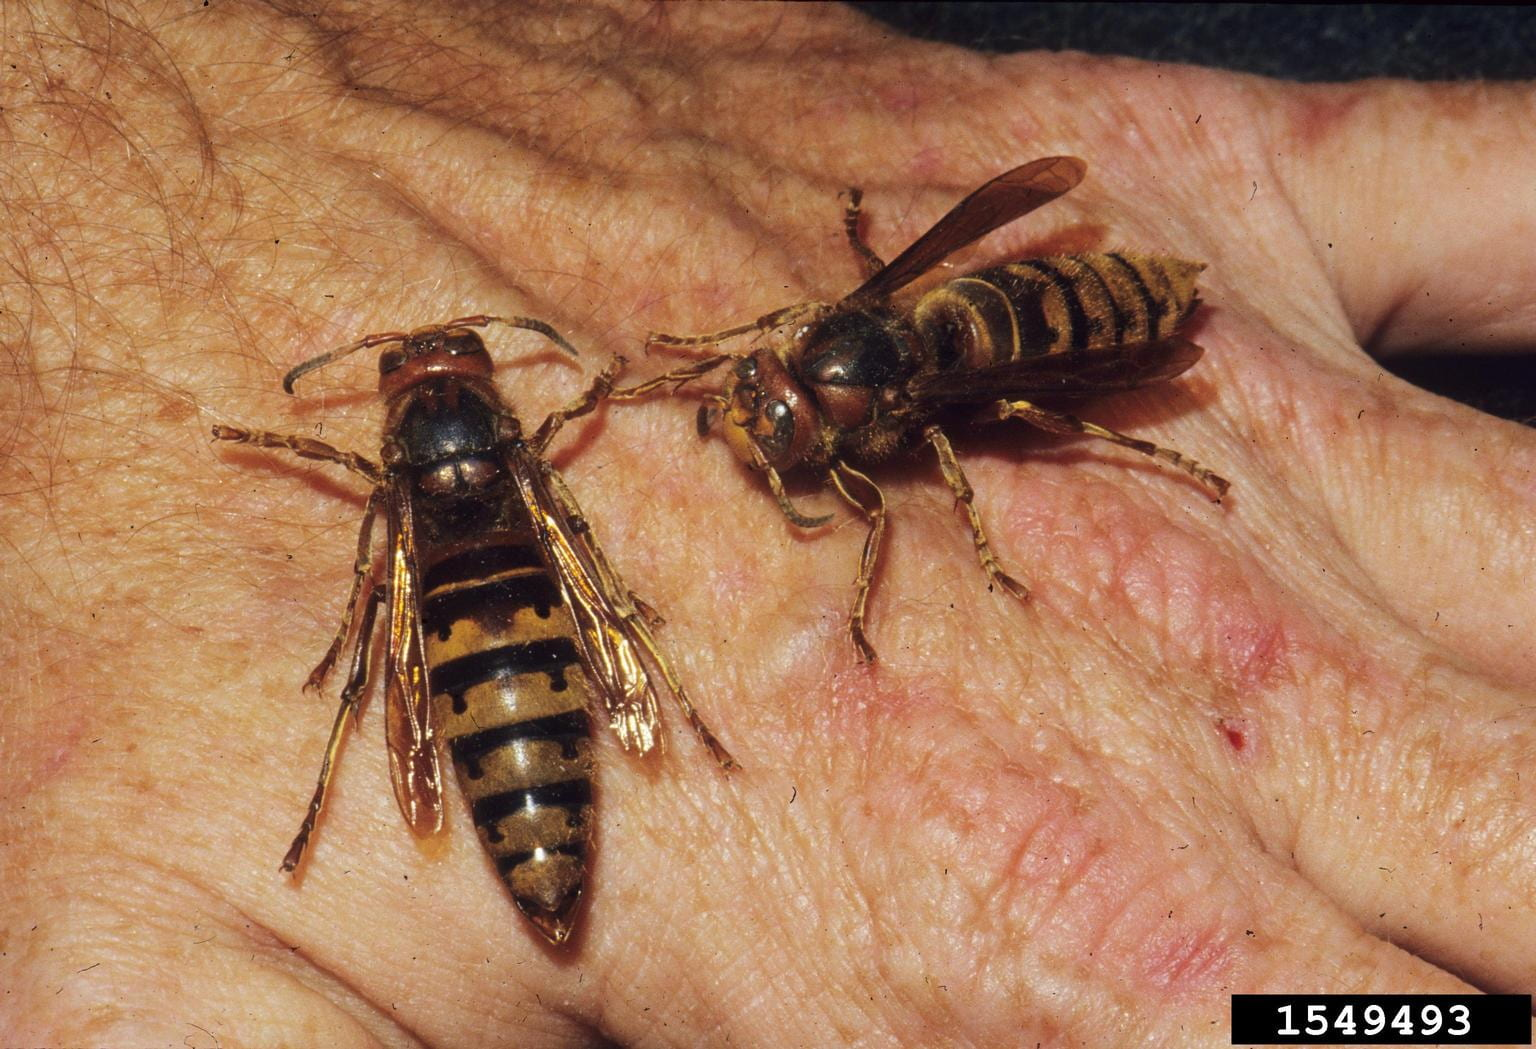 Photo shows two European hornet adults